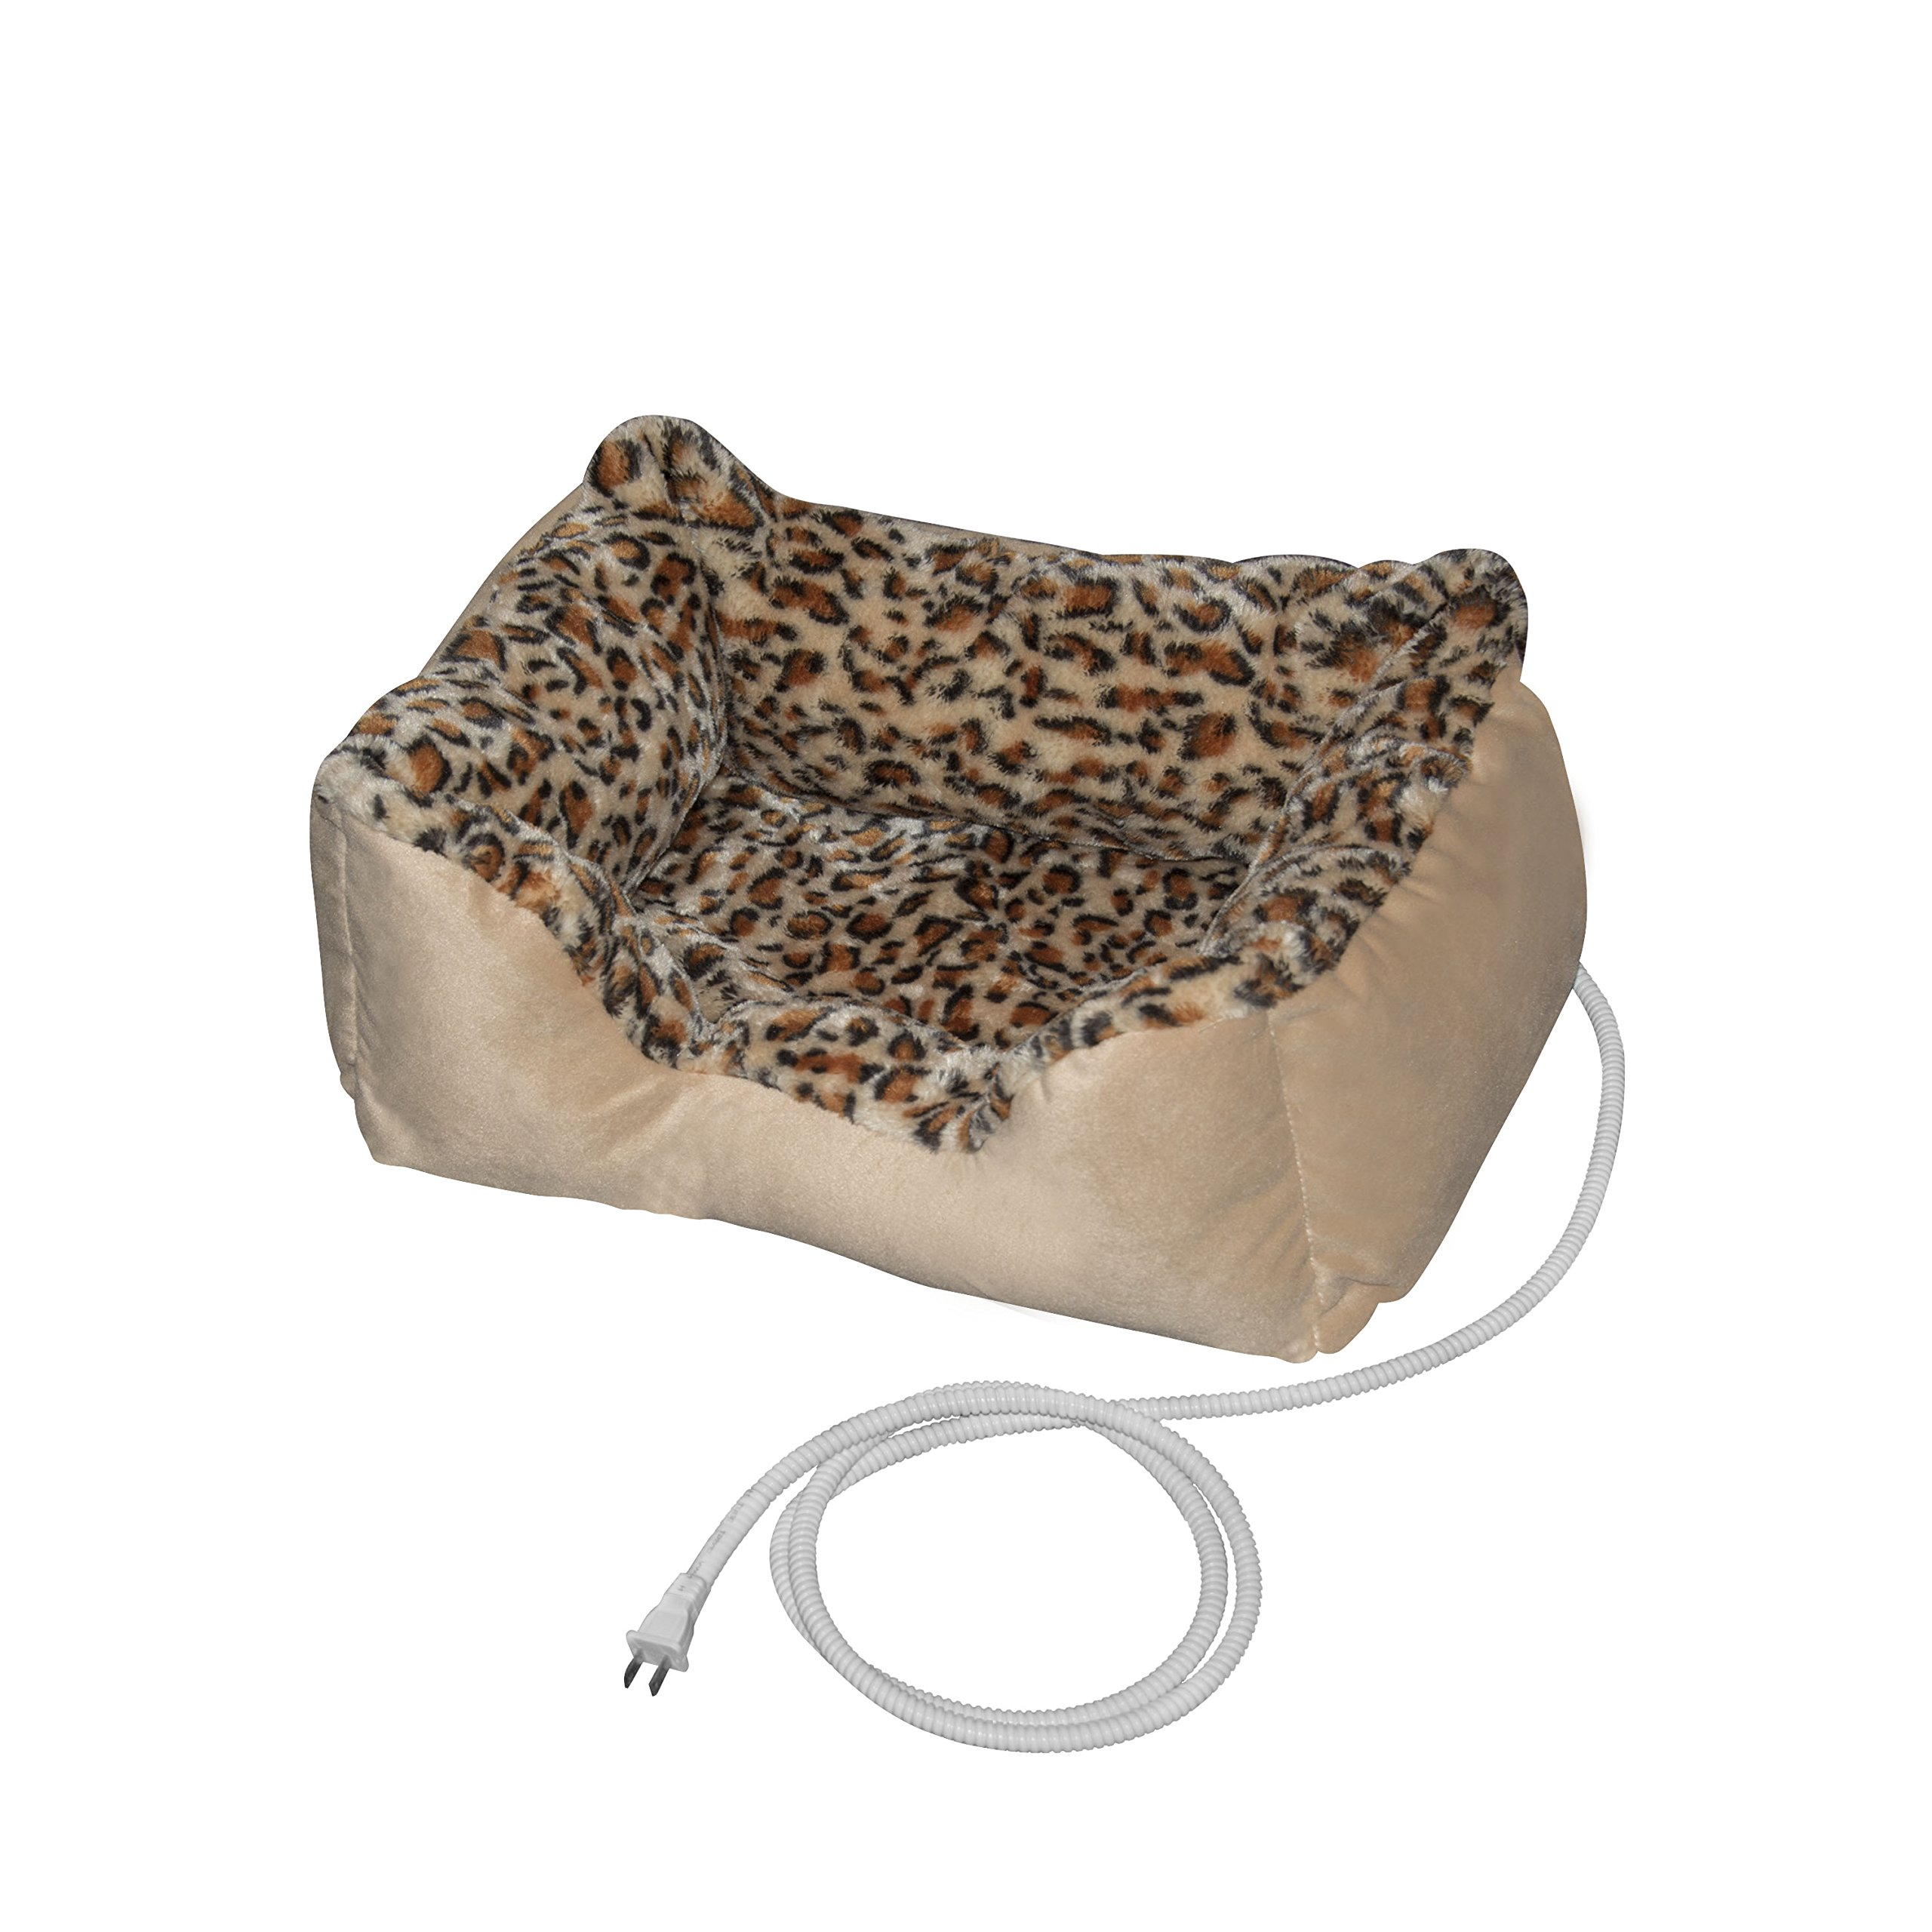 ALEKO PBH20X16X8 Electric Thermo-Pad Heated Pet Bed for Dogs and Cats 20 x 16 x 8 Inches Leopard Print by ALEKO